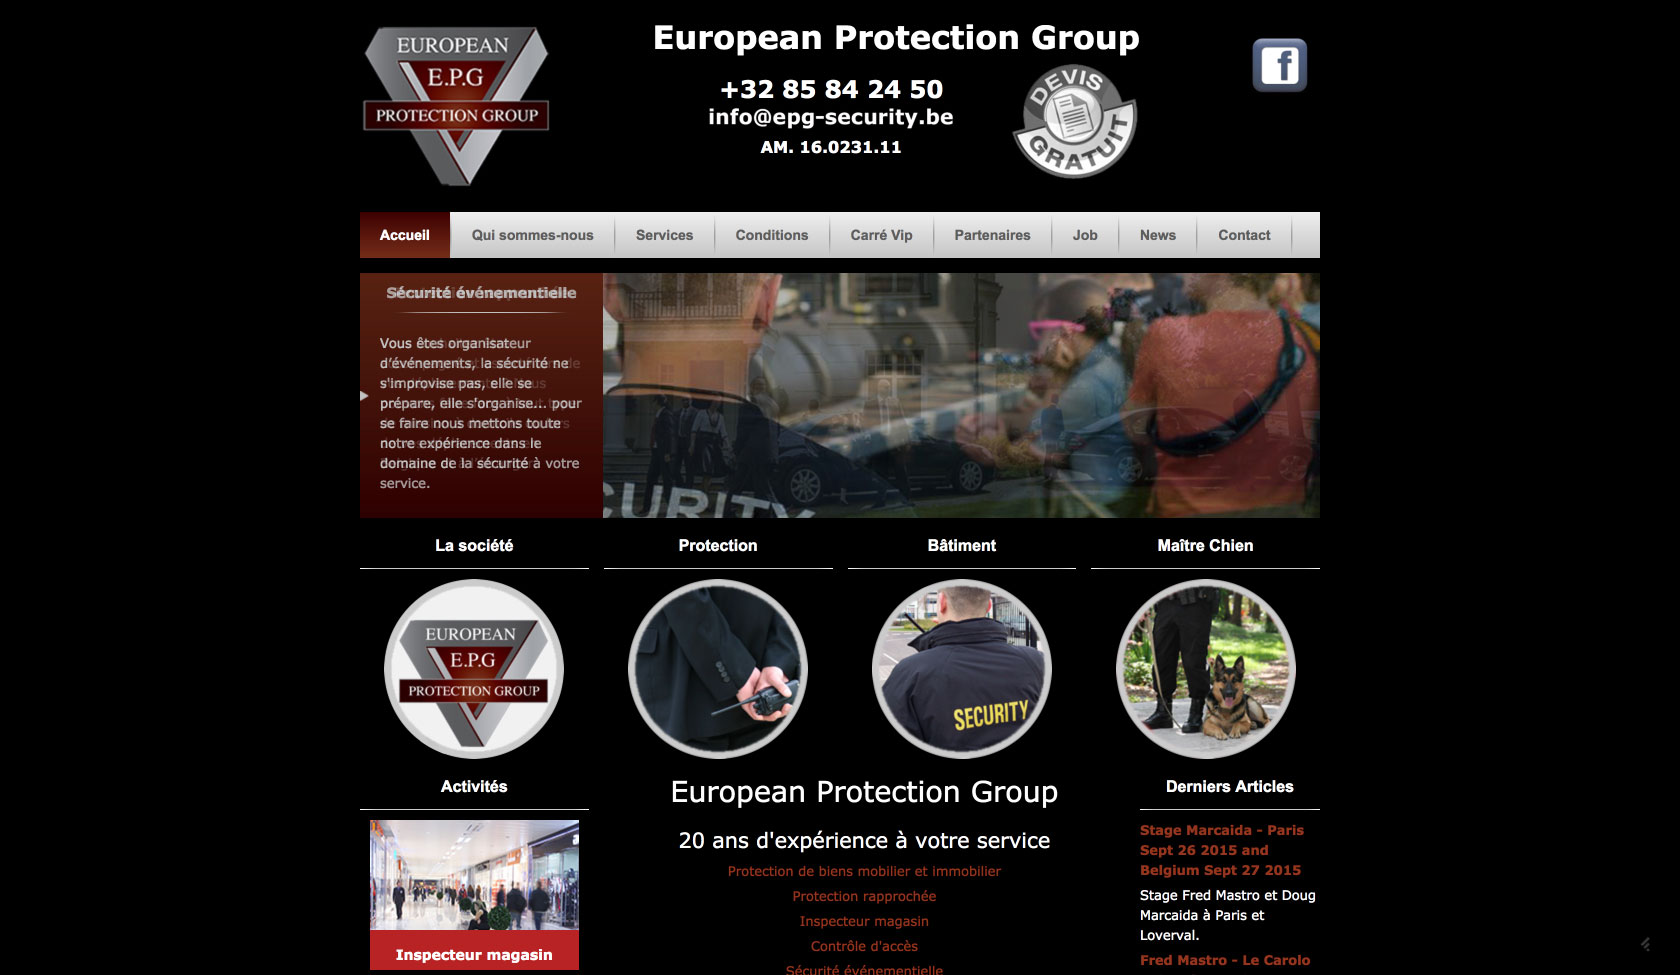 European Protection Group (EPG)